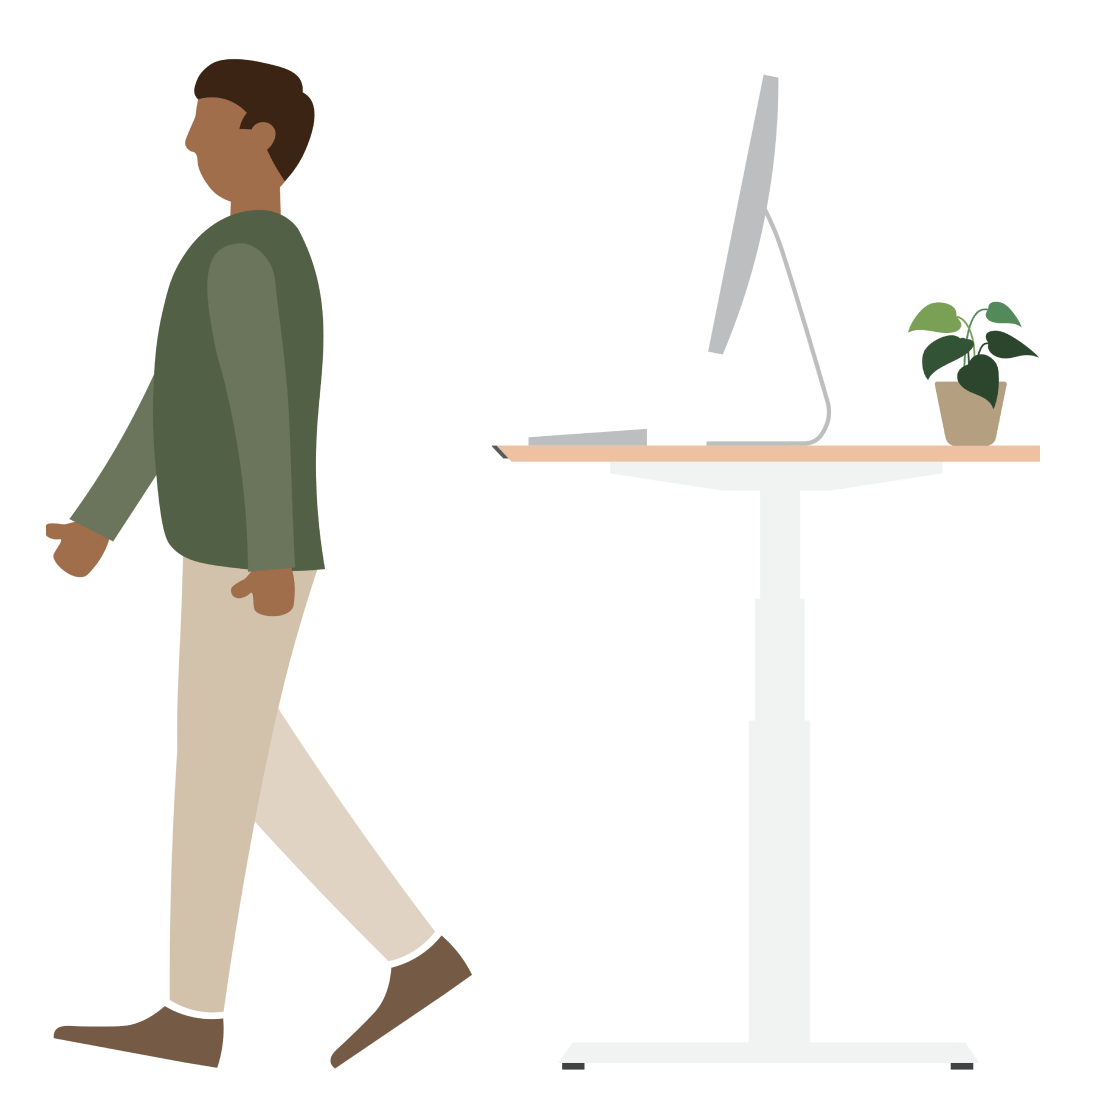 An illustration of a man walking away from a standing desk